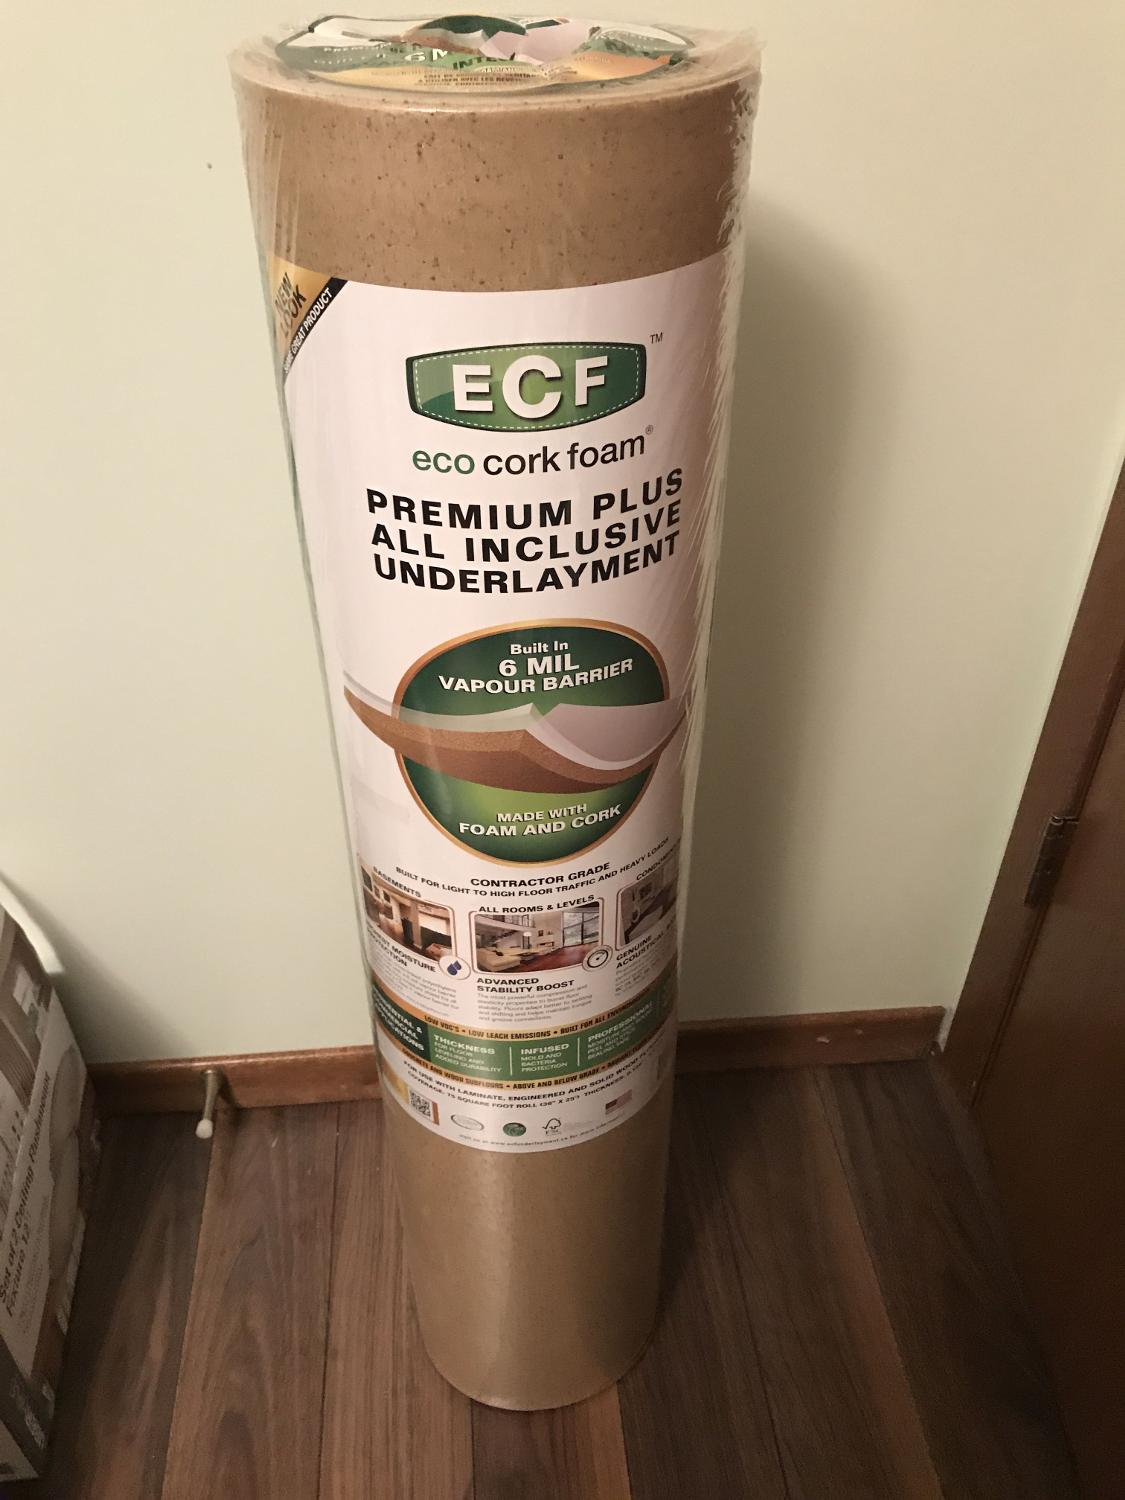 Find More Eco Cork Foam Under Lay 4 Rolls You Save 100